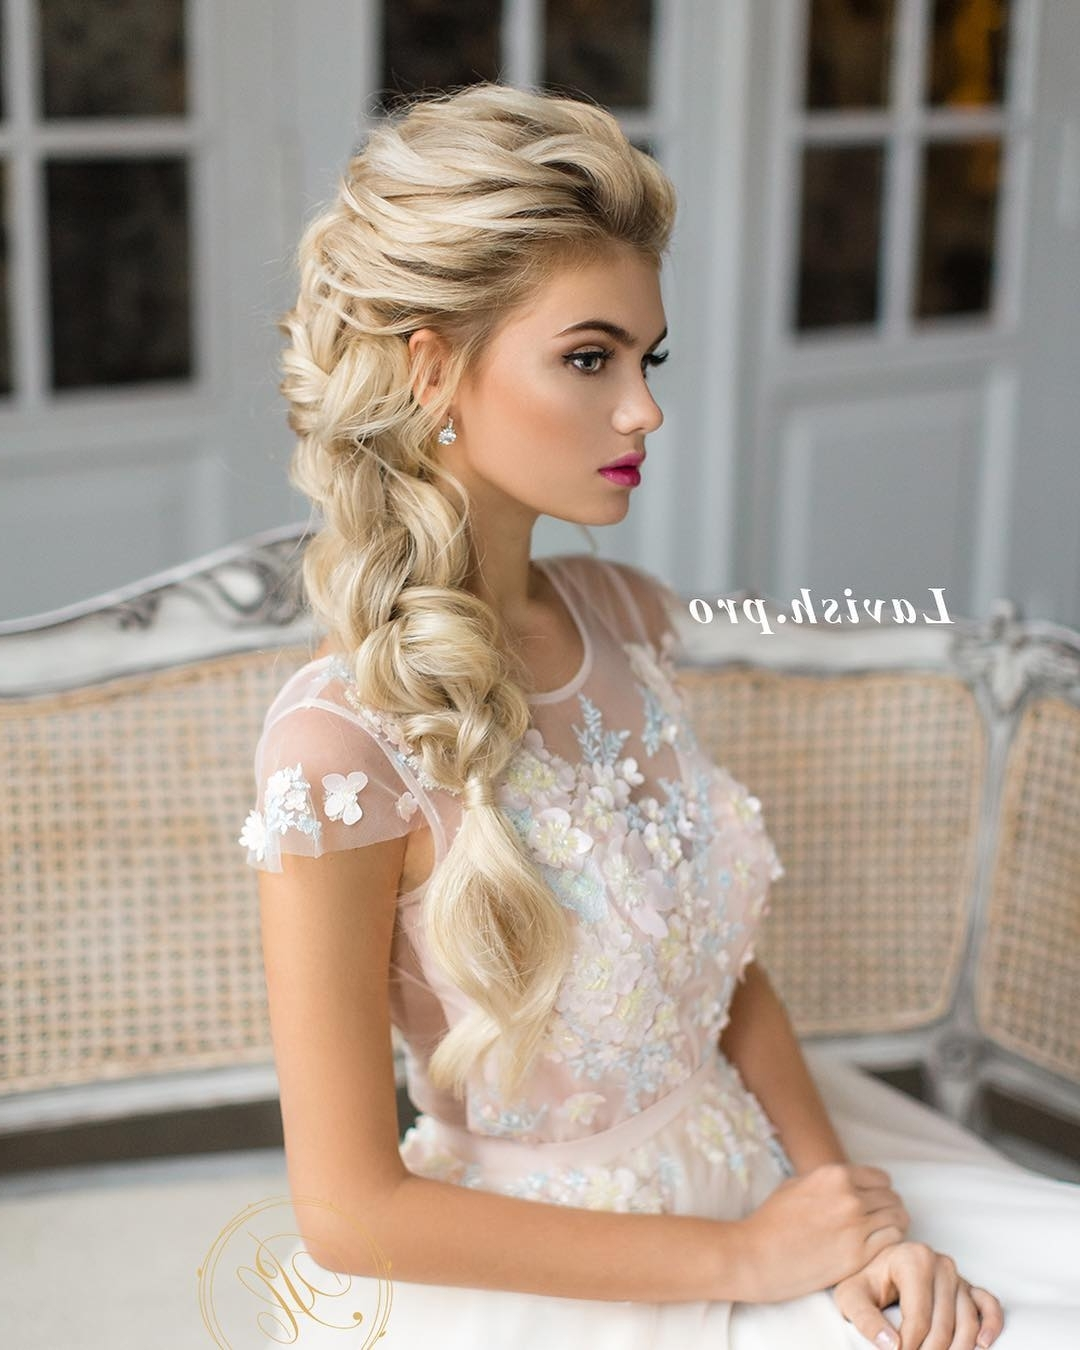 Best And Newest Wedding Hairstyles For Long Blonde Hair Throughout 10 Lavish Wedding Hairstyles For Long Hair – Wedding Hairstyle Ideas (View 5 of 15)